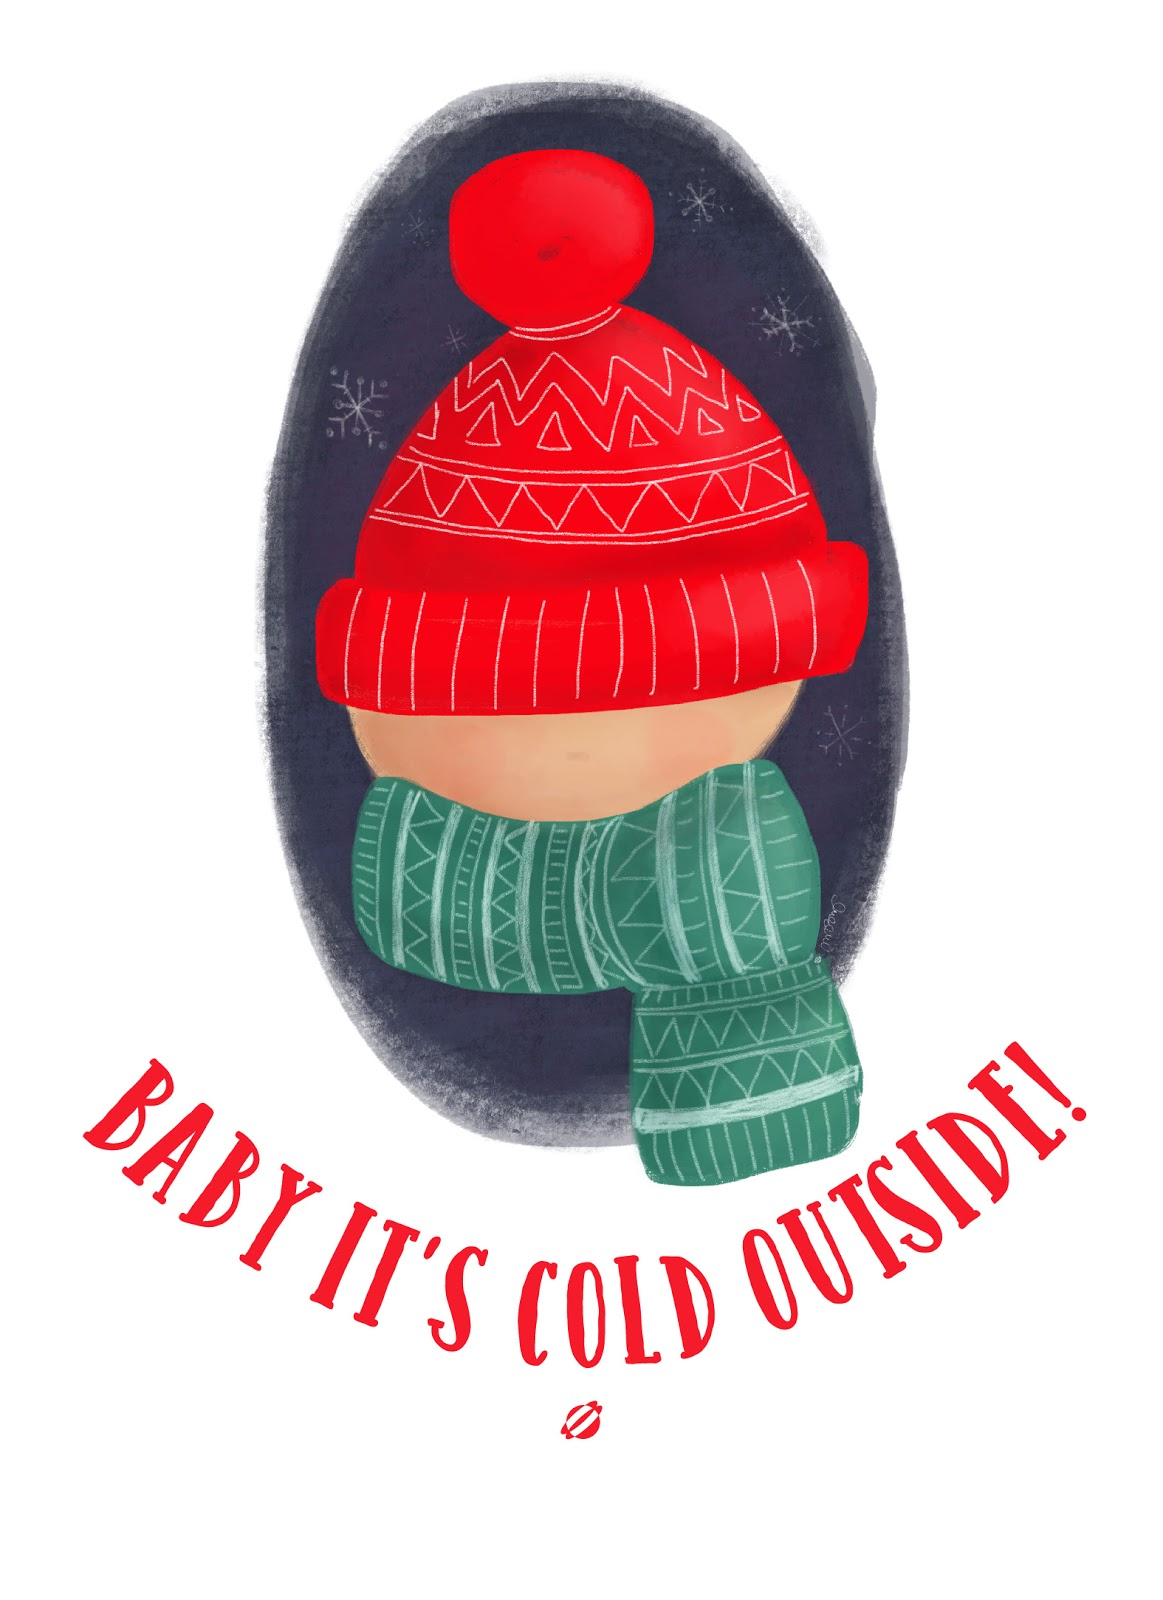 LostBumblebee ©2014 MDBN- Baby It's Cold Outside- Free Printable- Personal Use Only